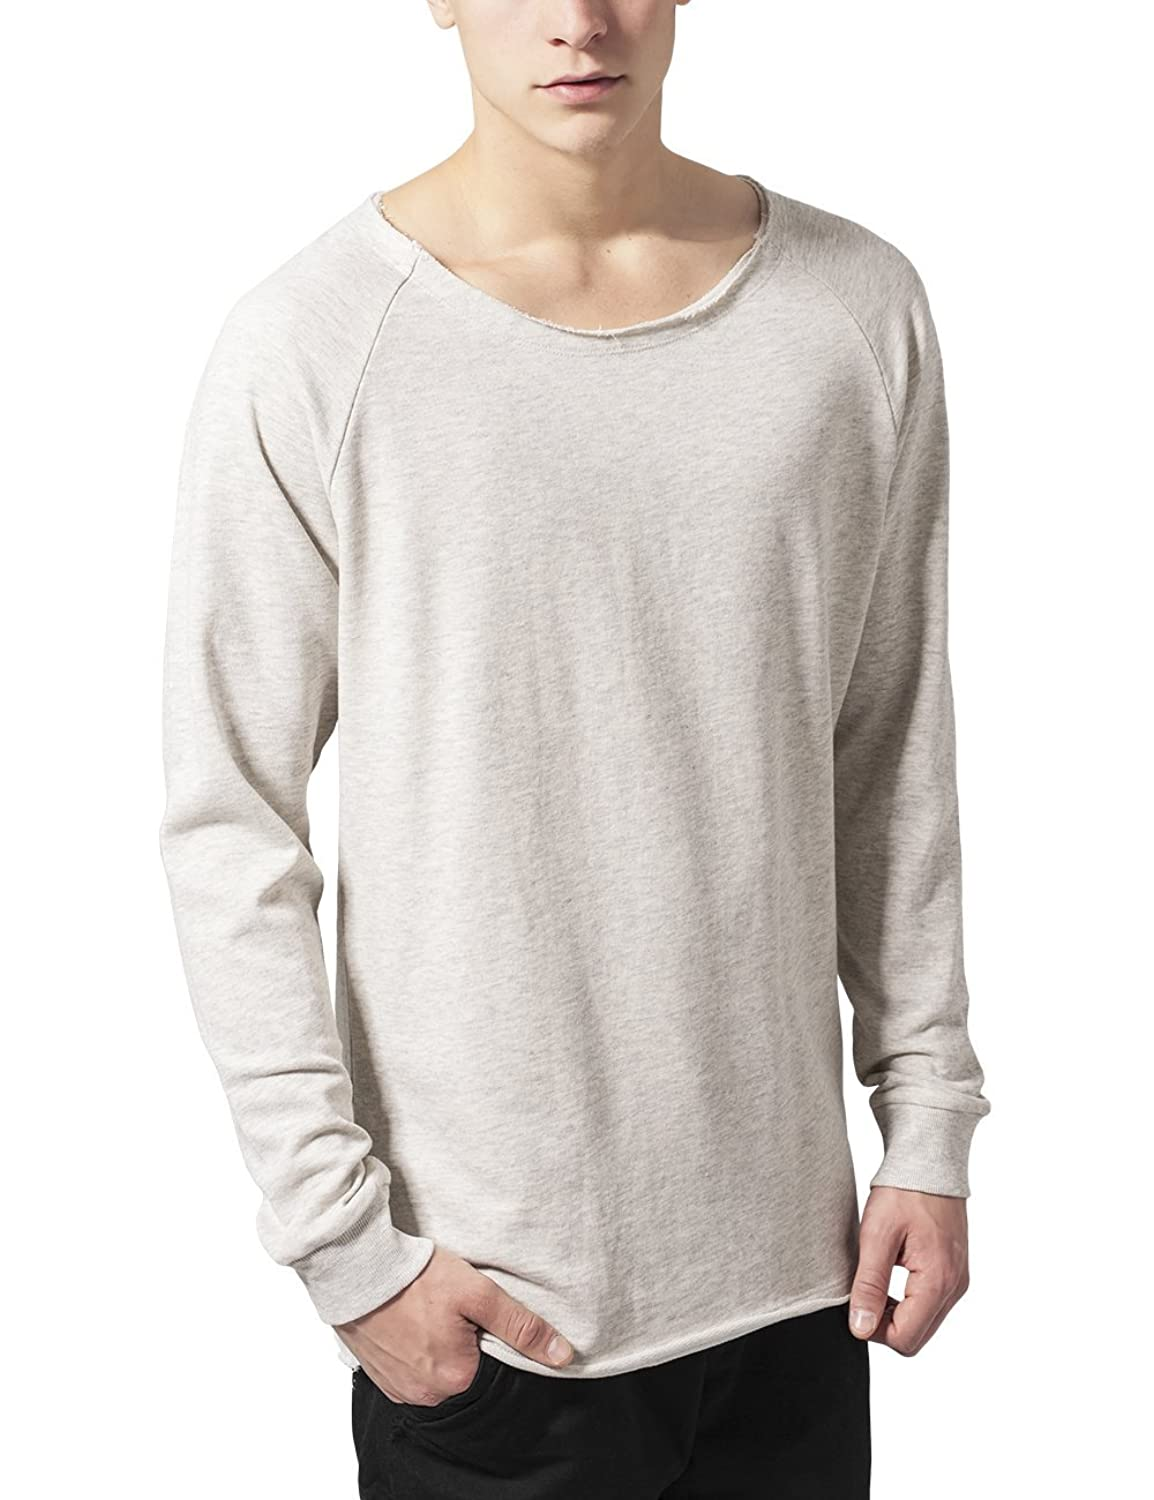 Urban Classics Men's Long Open Edge Terry Crewneck Sweatshirt